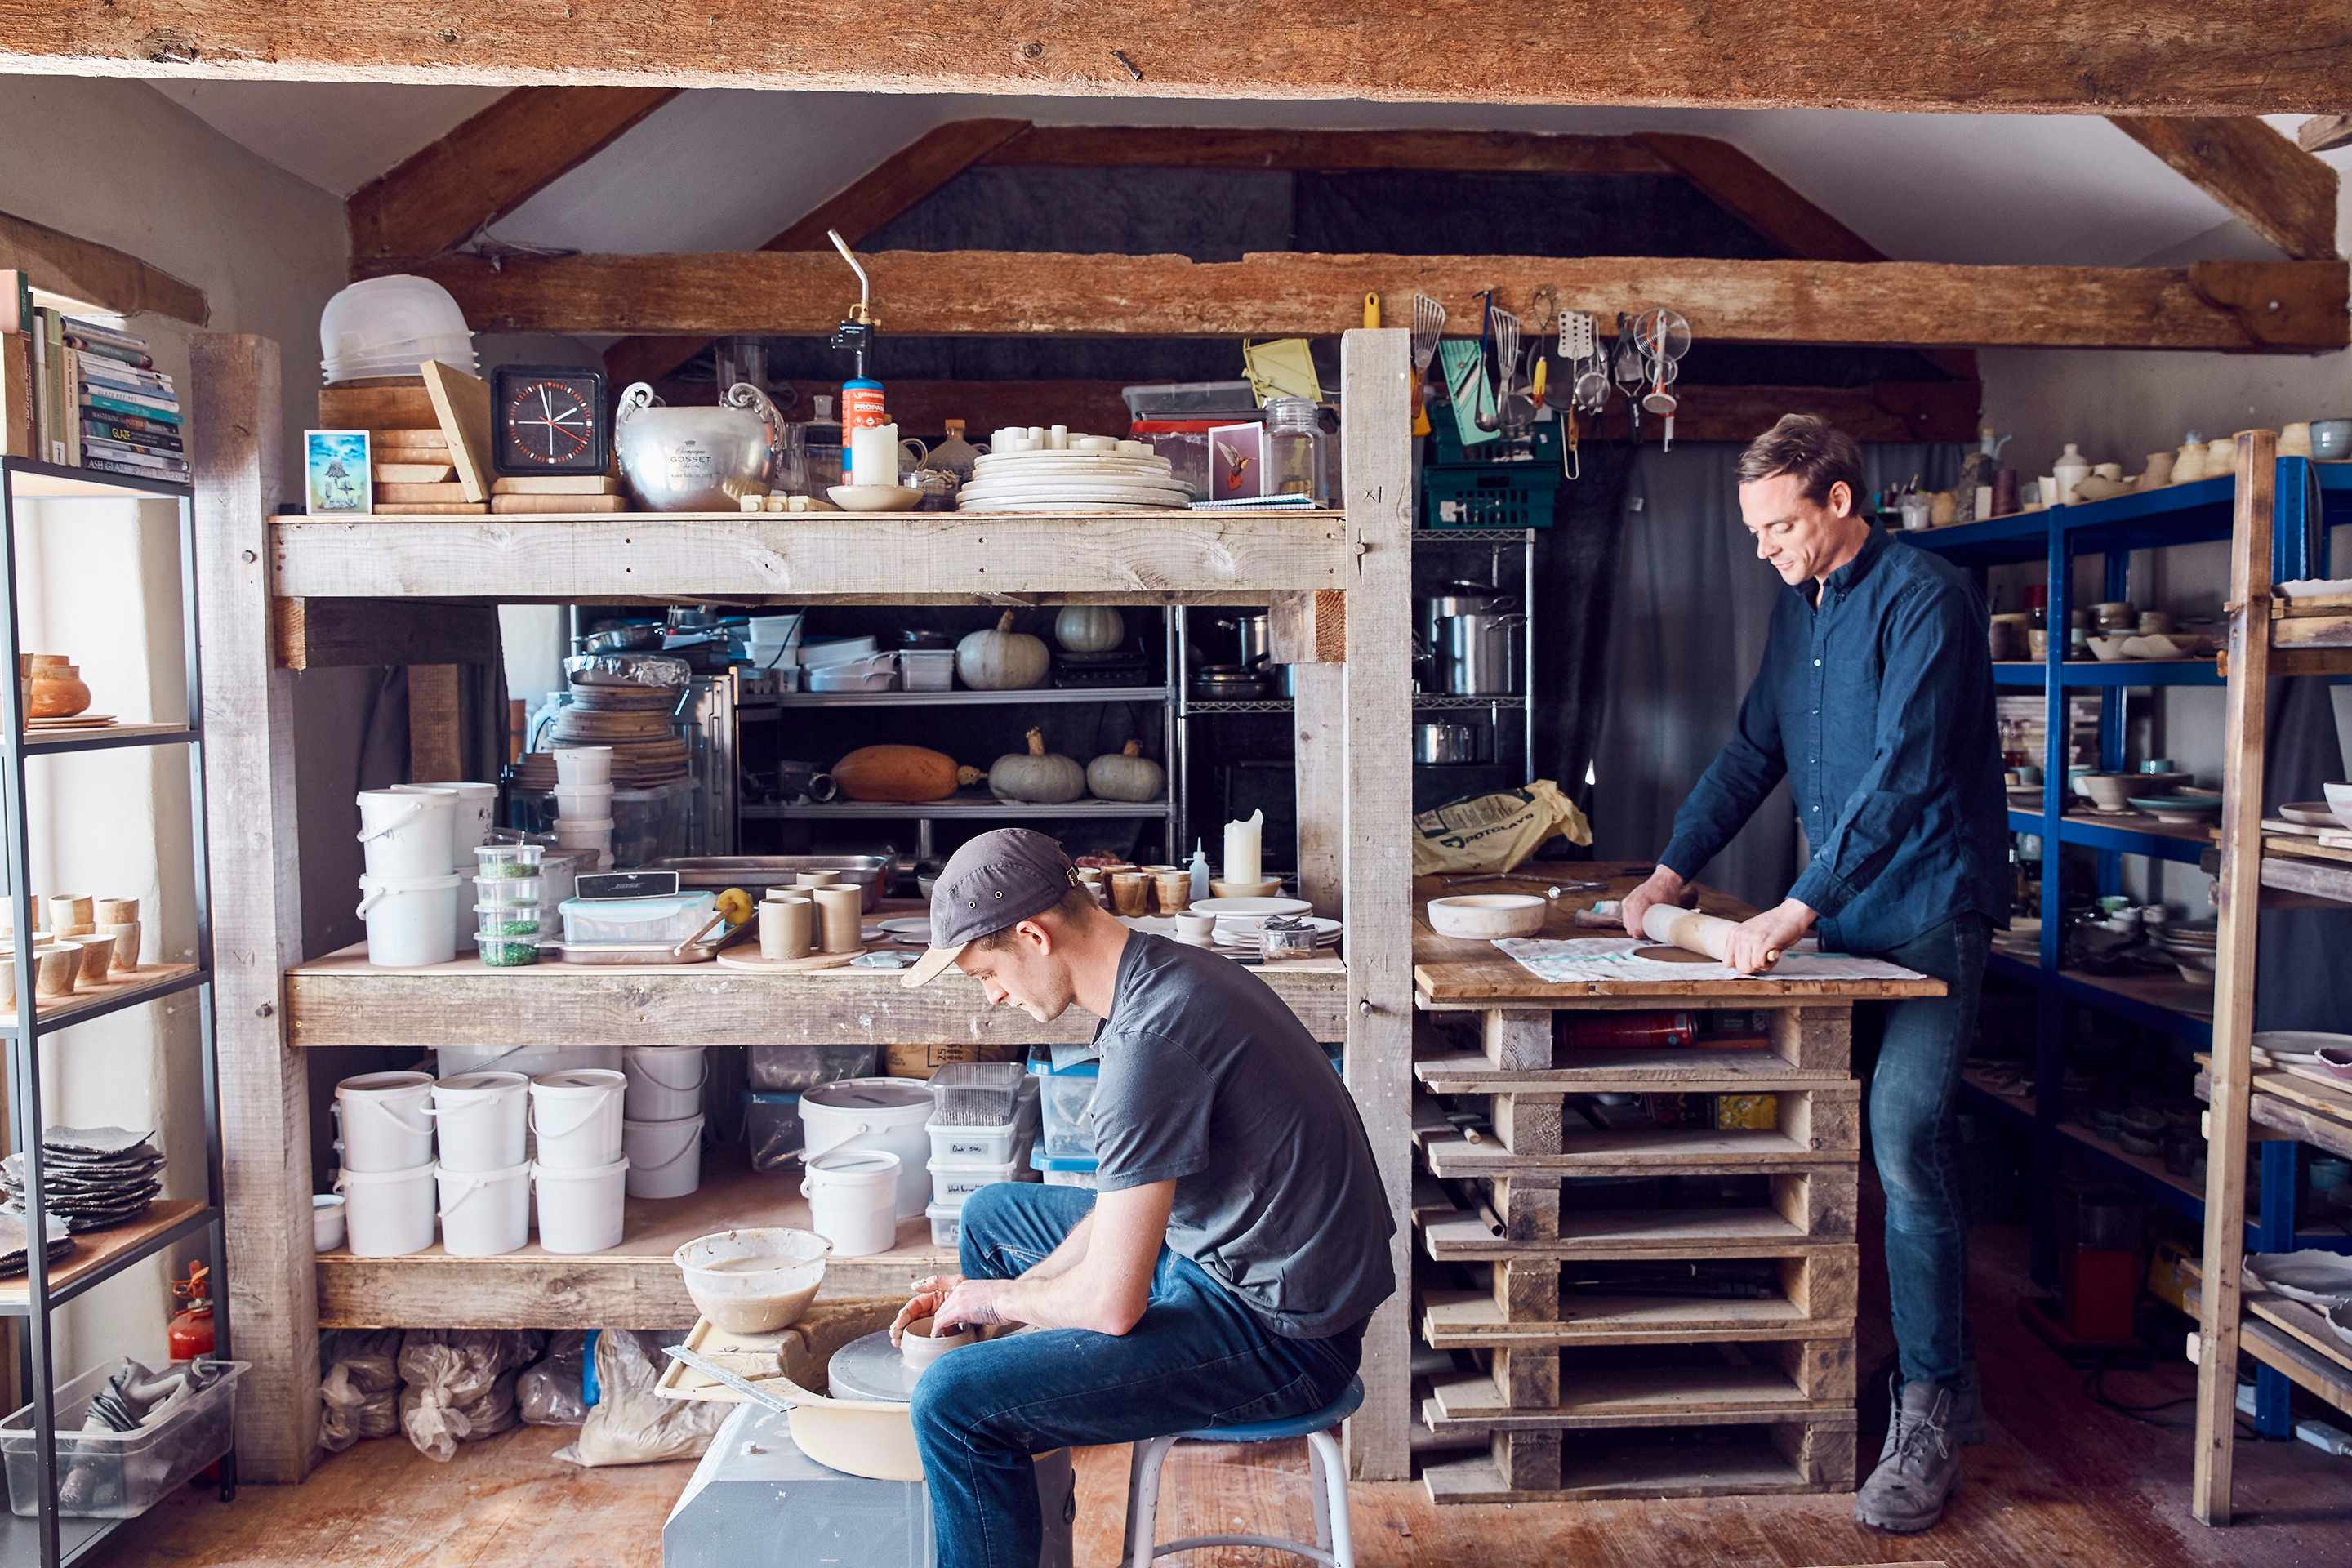 Two men are in a pottery studio. One is working around a wheel and the other is rolling out clay with a rolling stick